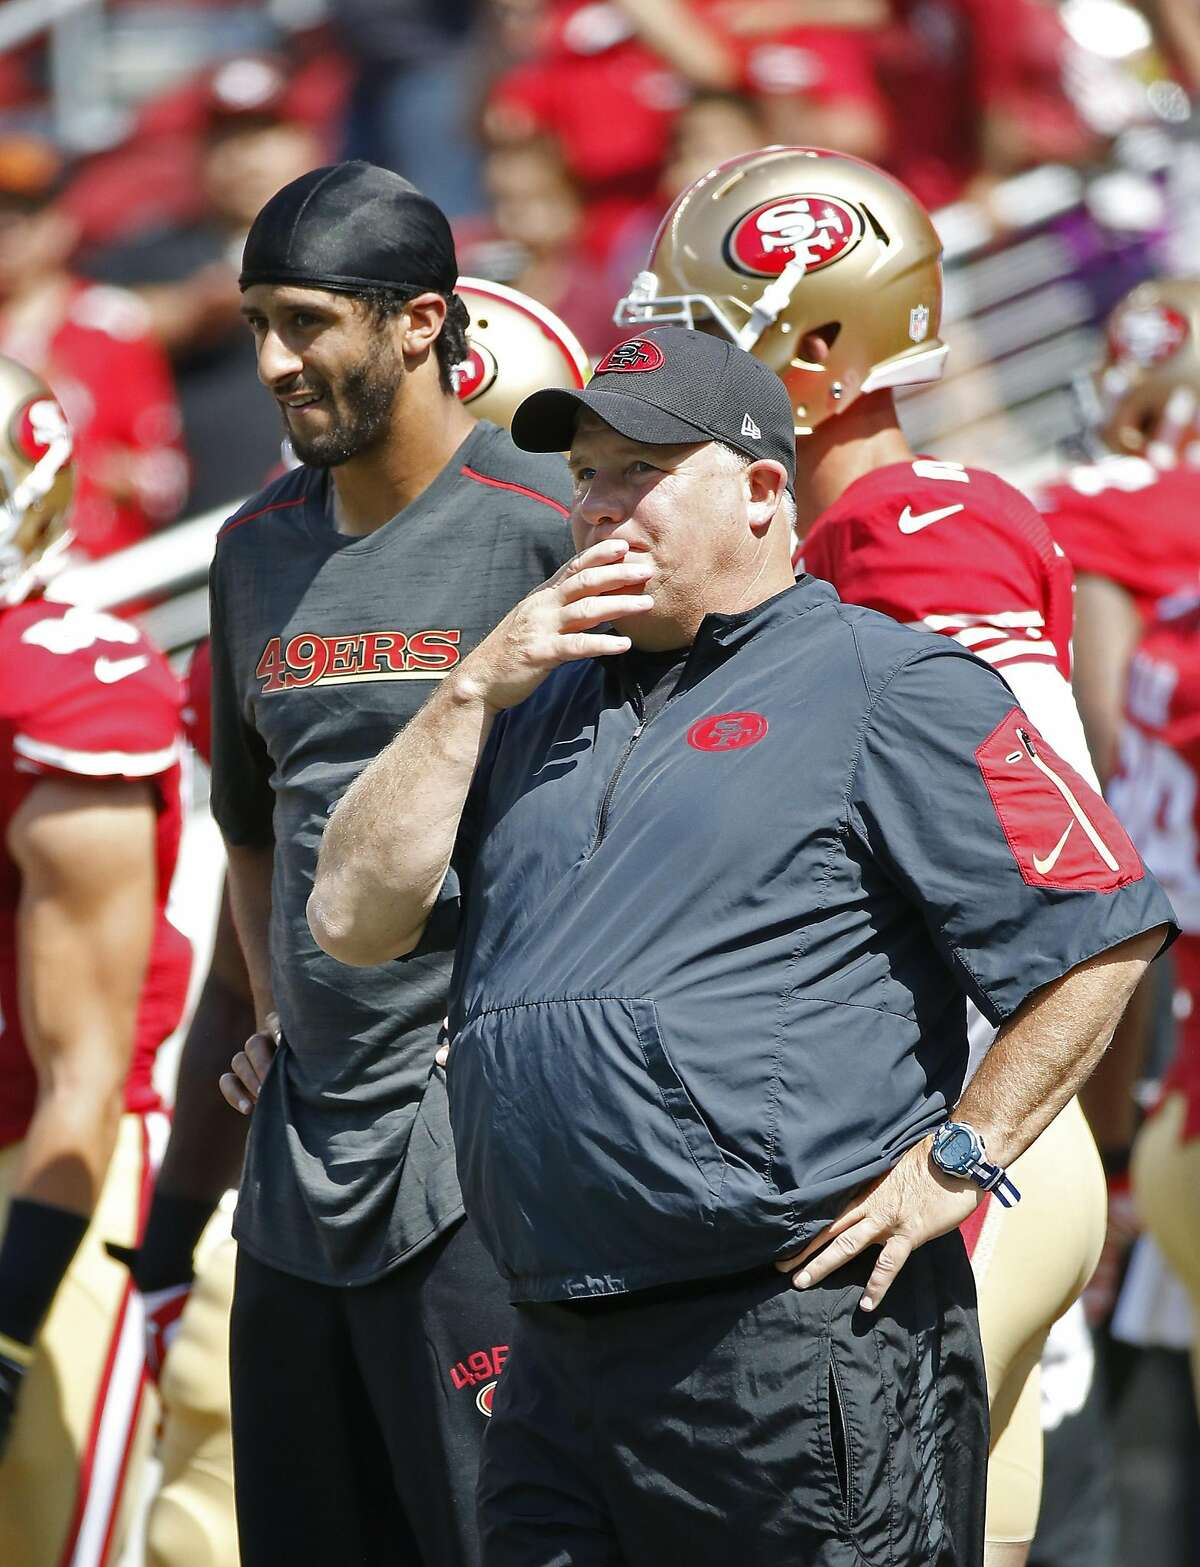 San Francisco 49ers head coach Chip Kelly, right, and quarterback Colin Kaepernick, left, watch warmups before the start of an NFL preseason football game against the Houston Texans Sunday, Aug. 14, 2016, in Santa Clara, Calif. (AP Photo/Tony Avelar)